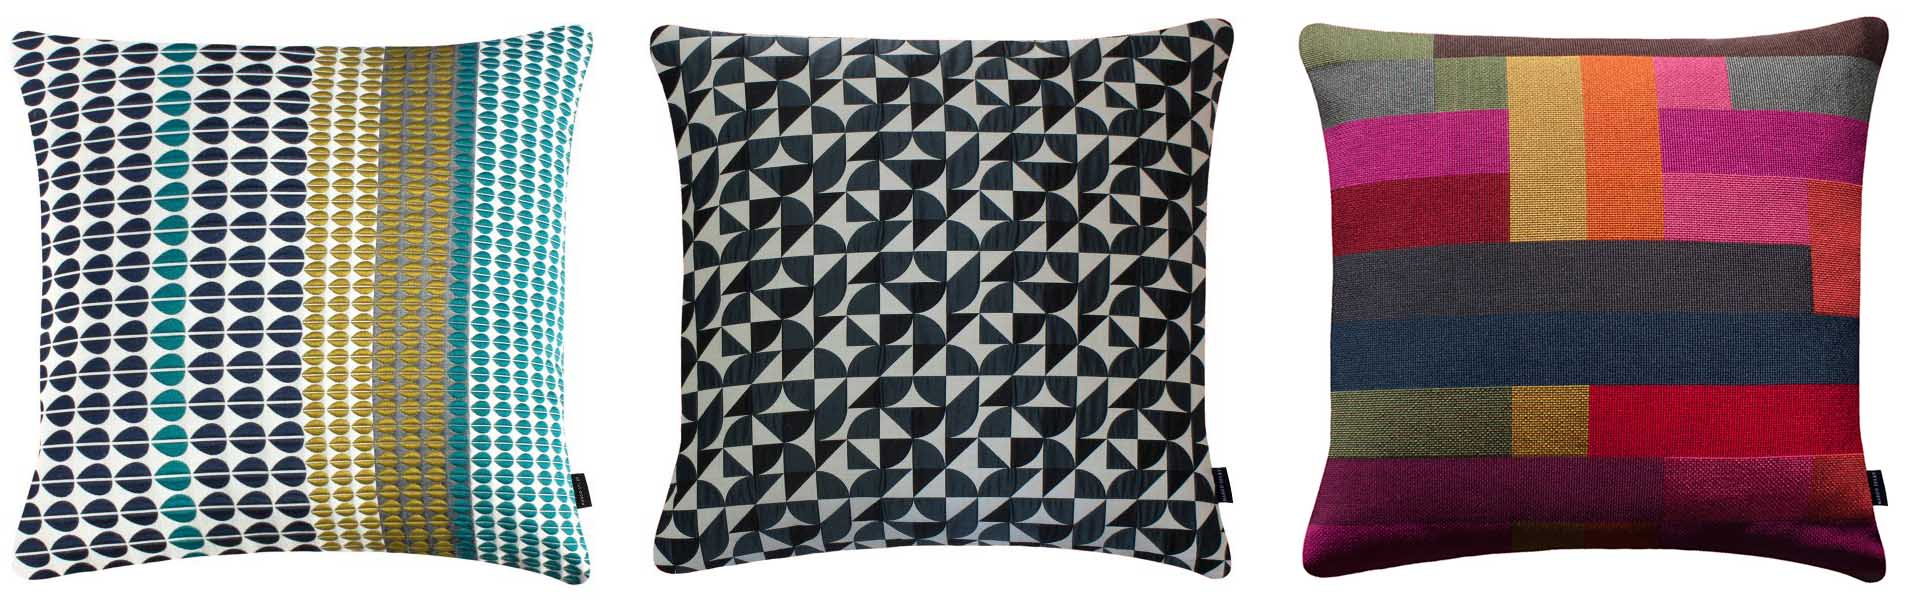 Margo-Selby-cushions